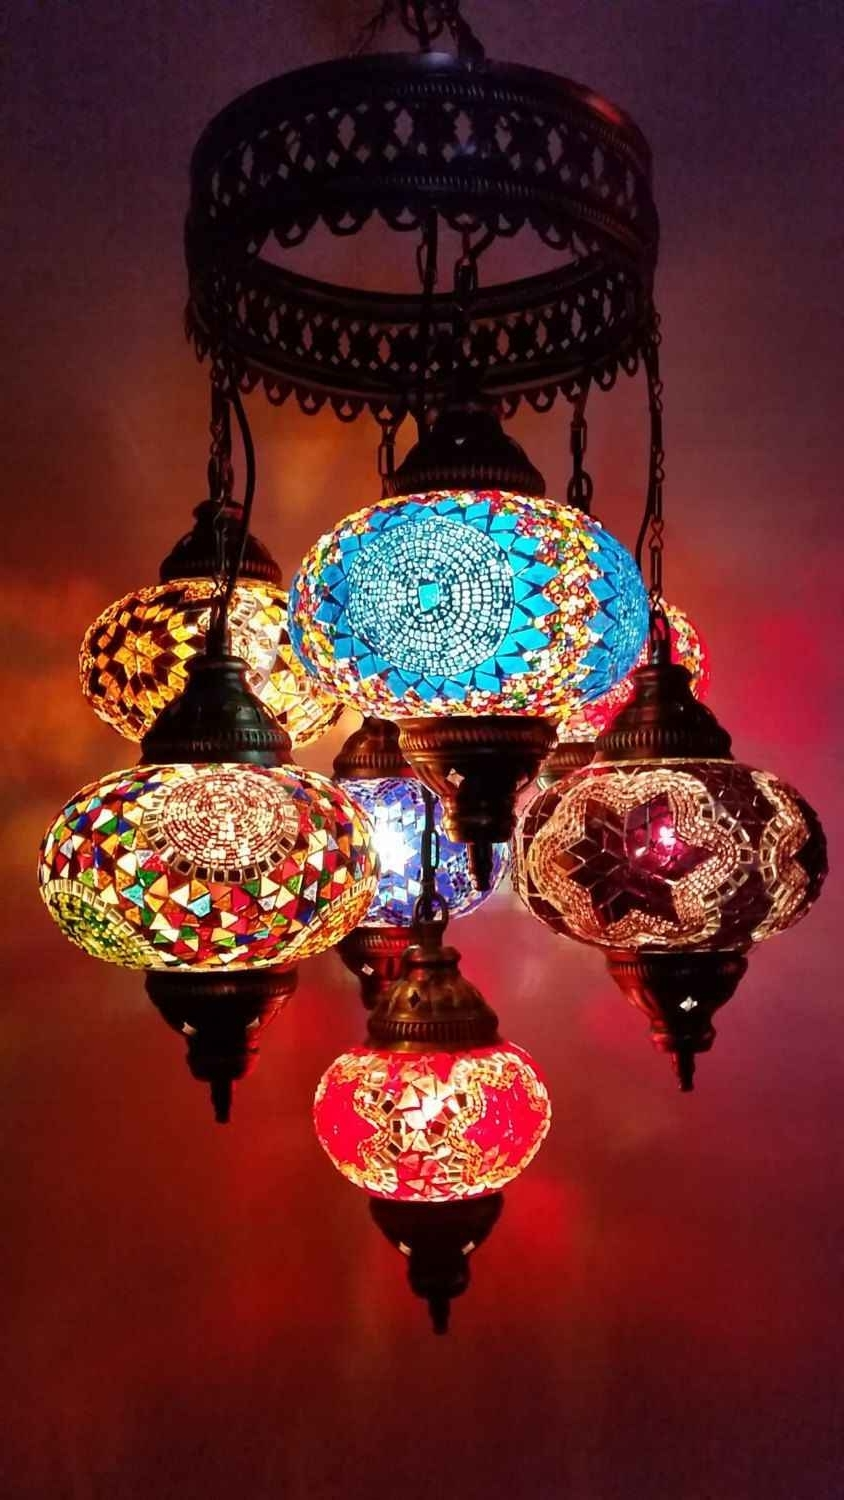 Famous Multicolor Handmade 7 Balls Moroccan Mosaic Hanging Lamp Lantern Inside Outdoor Mosaic Lanterns (View 5 of 20)